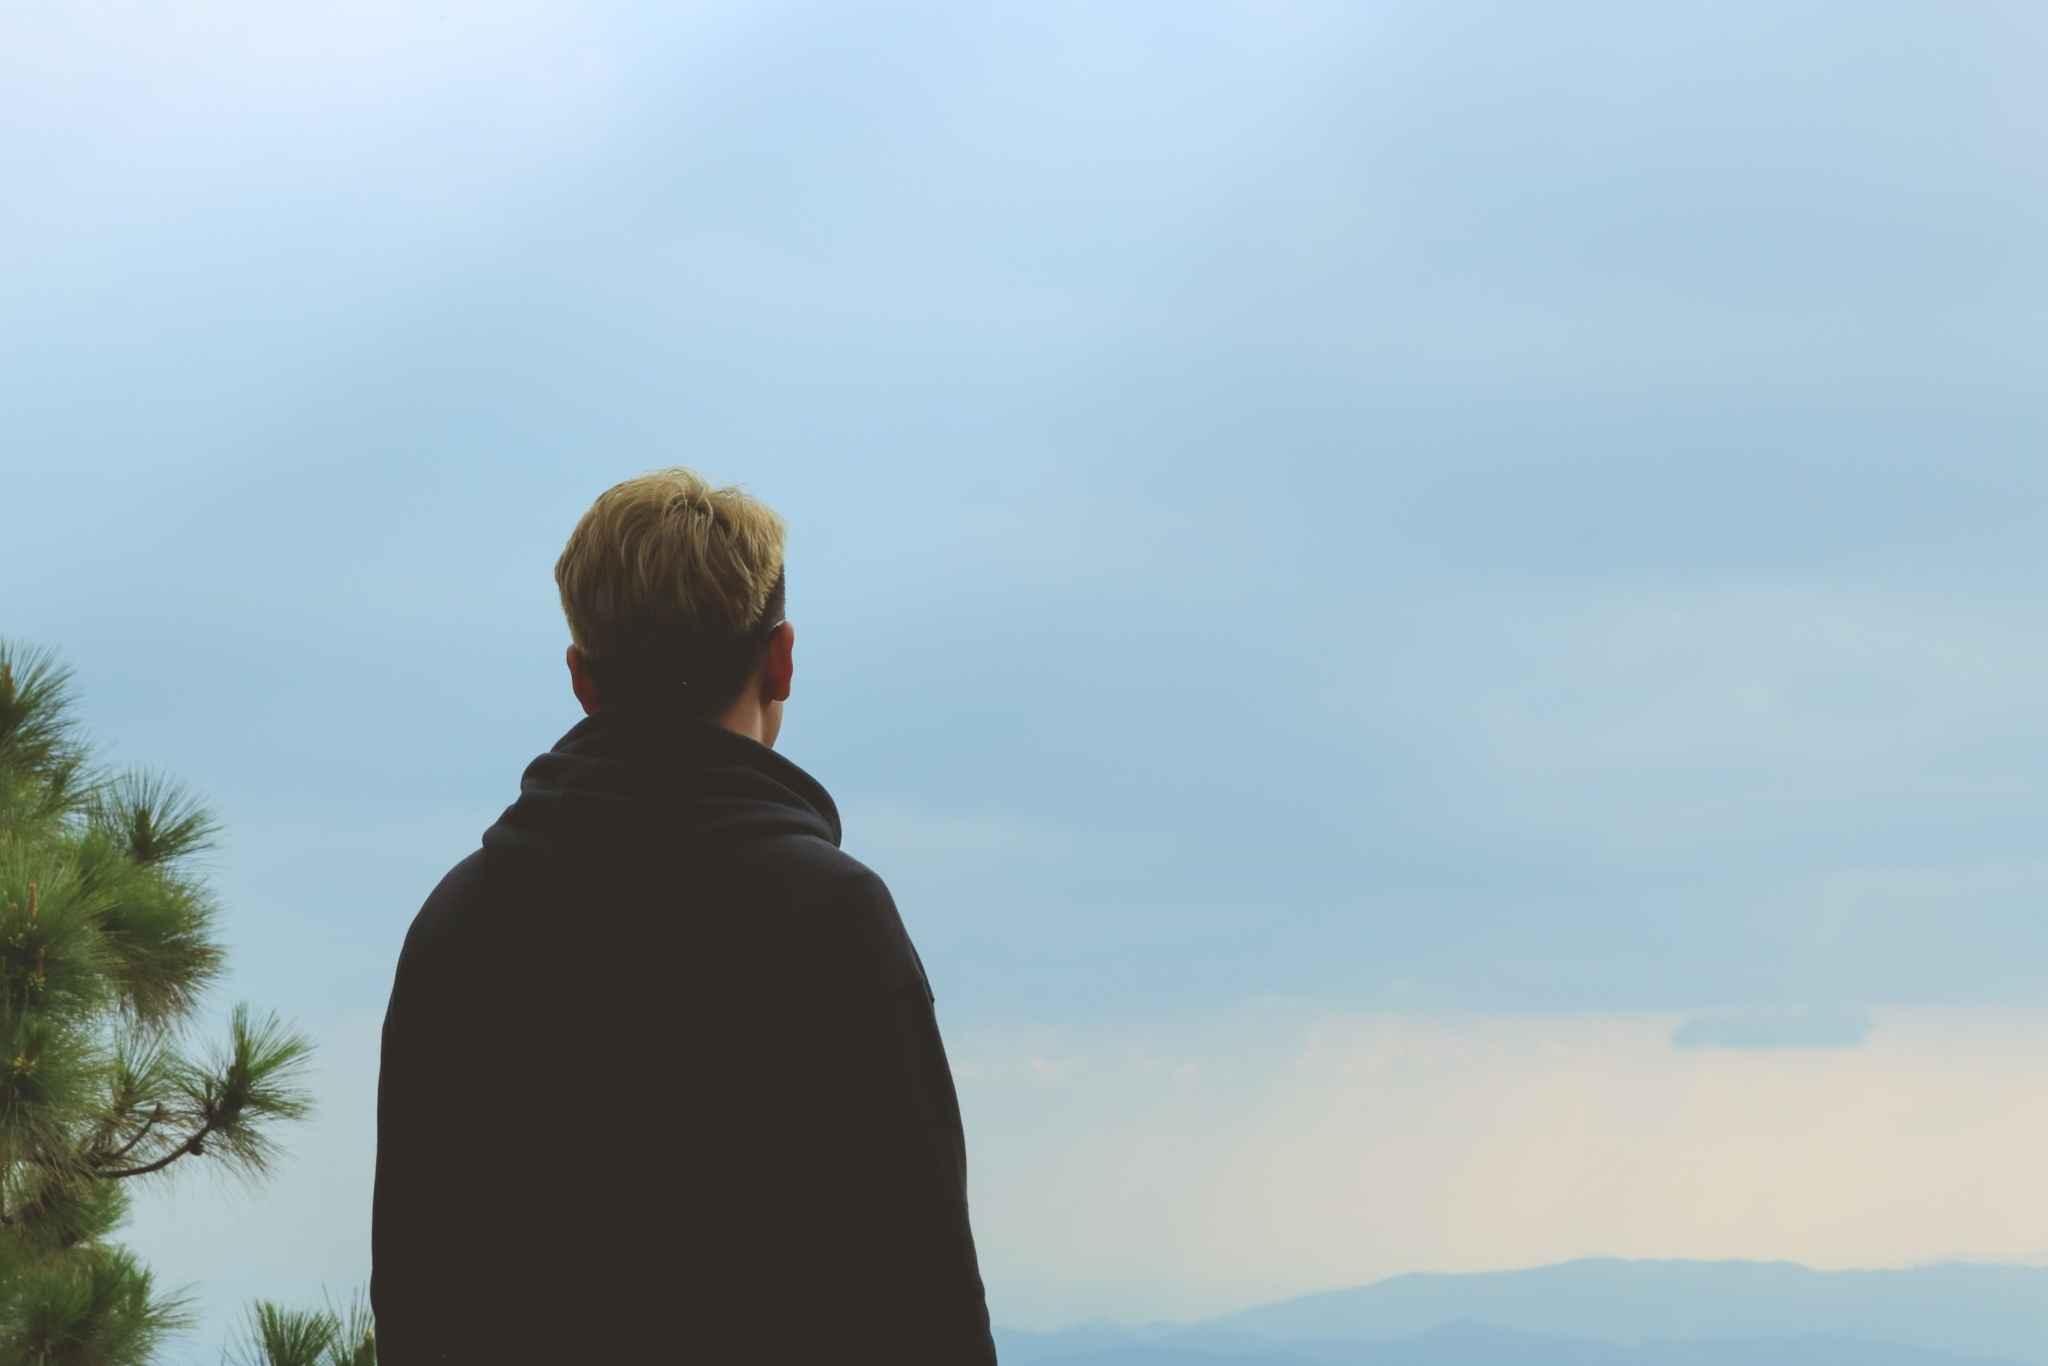 Alone-back-view-clouds-865349